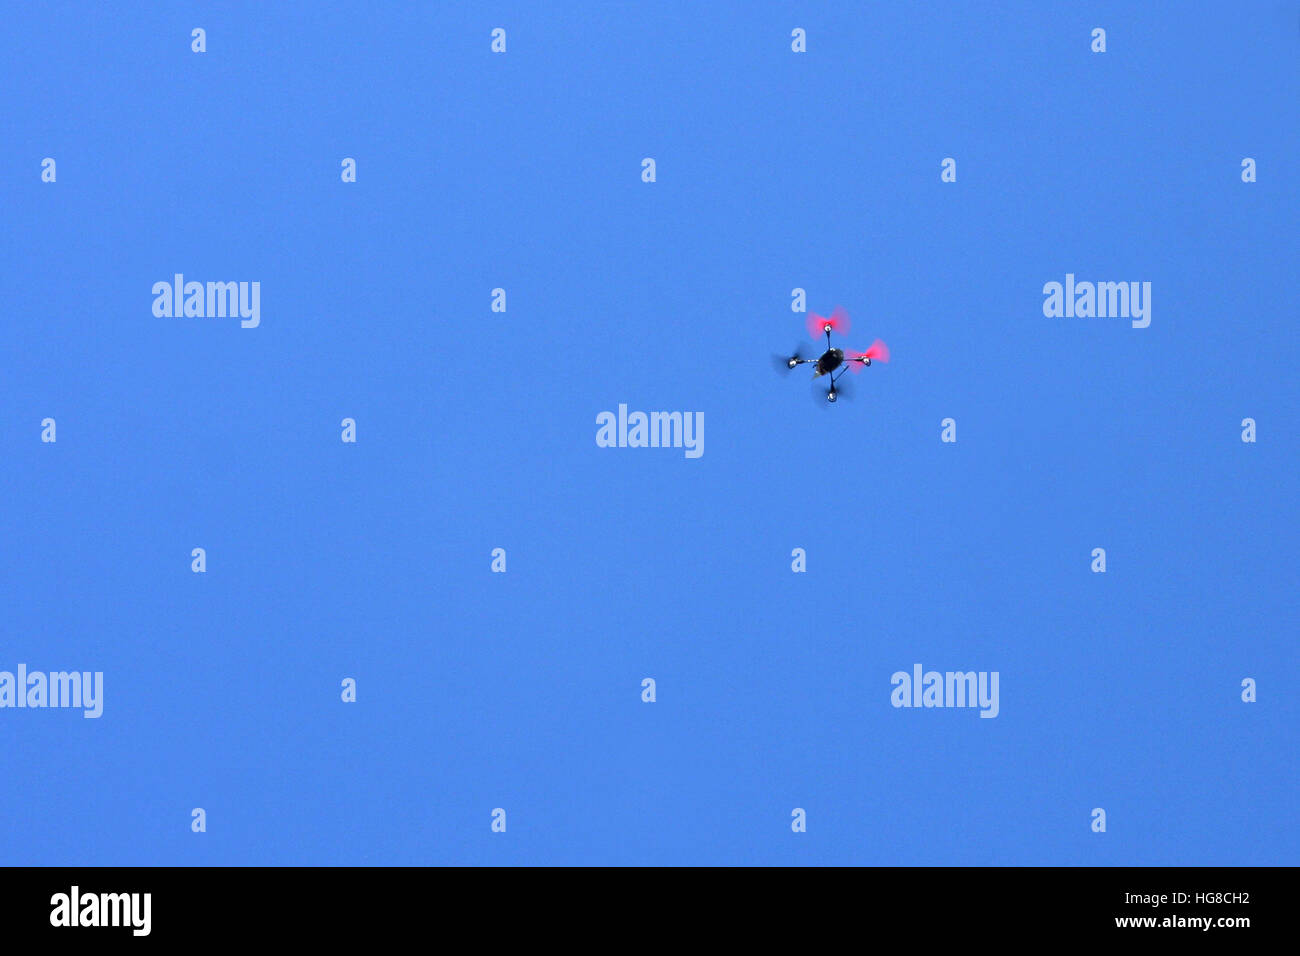 Drone in flight - Stock Image